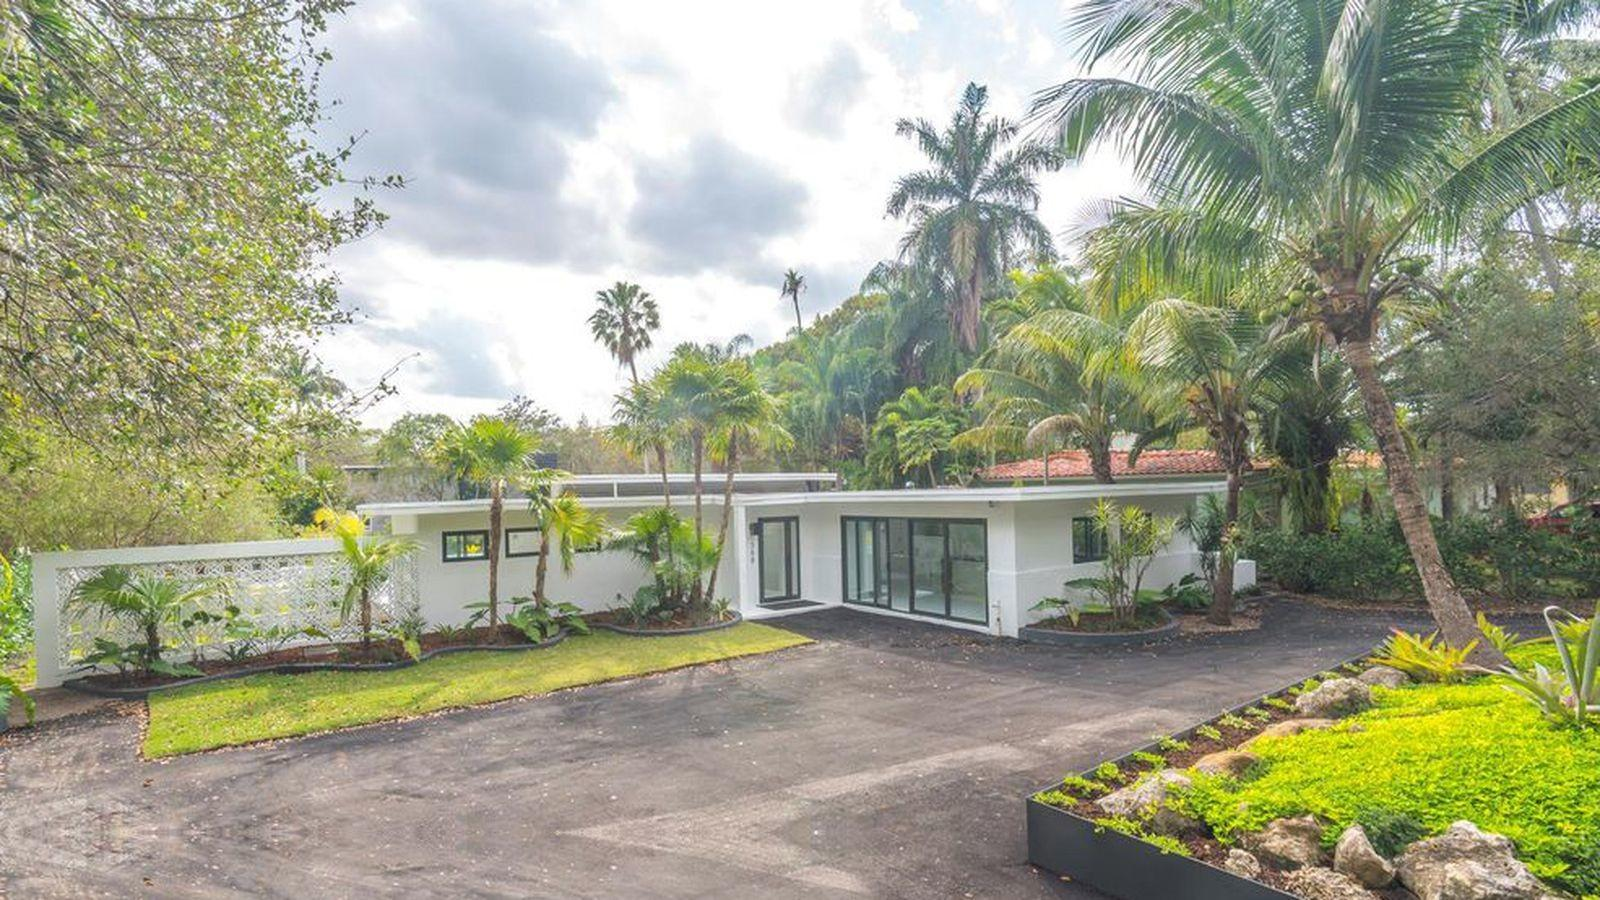 Modern Renovated Home Portal Asking Curbed Miami